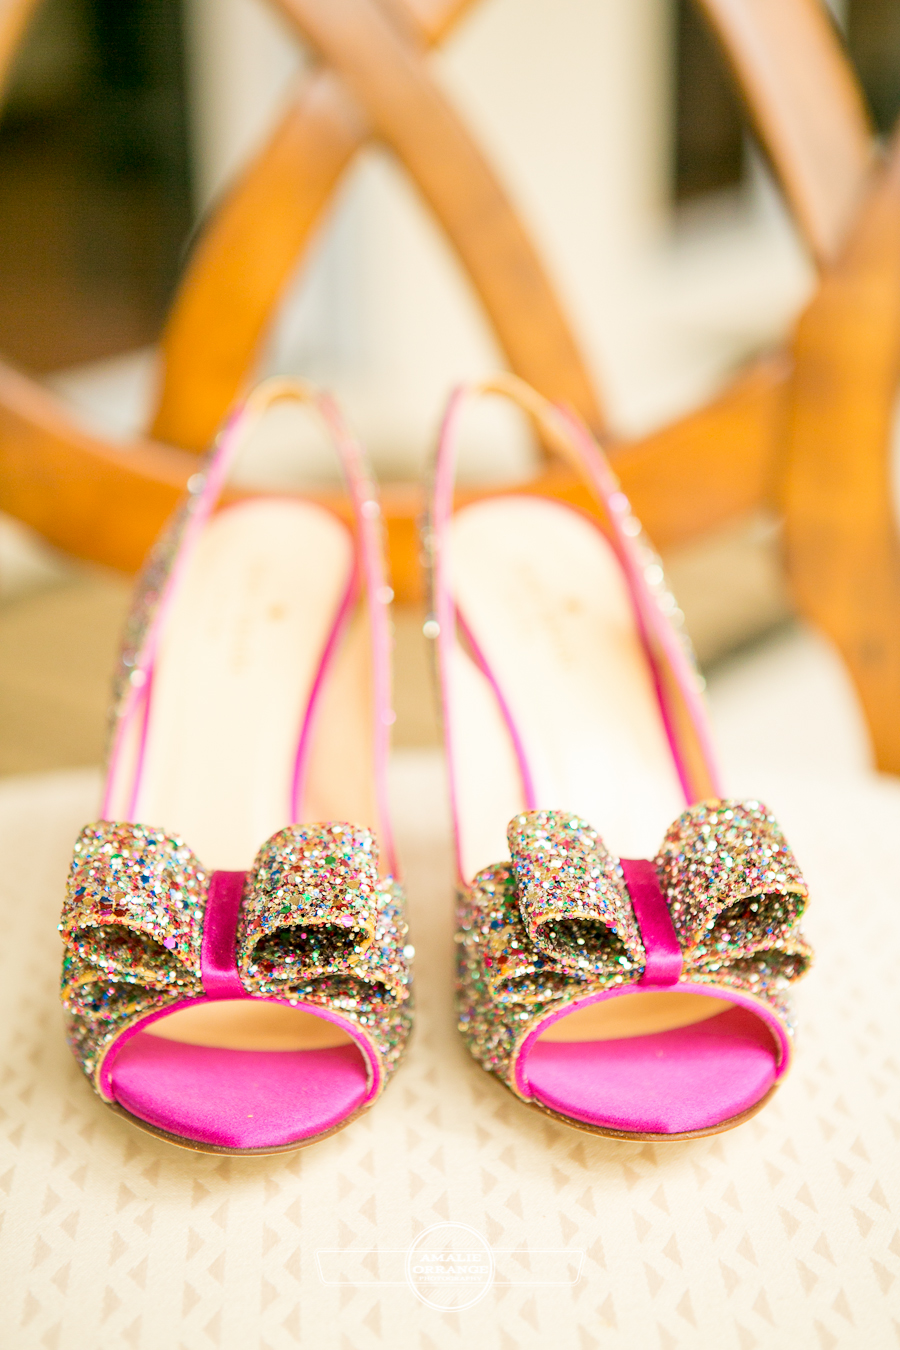 glittery pink shoes